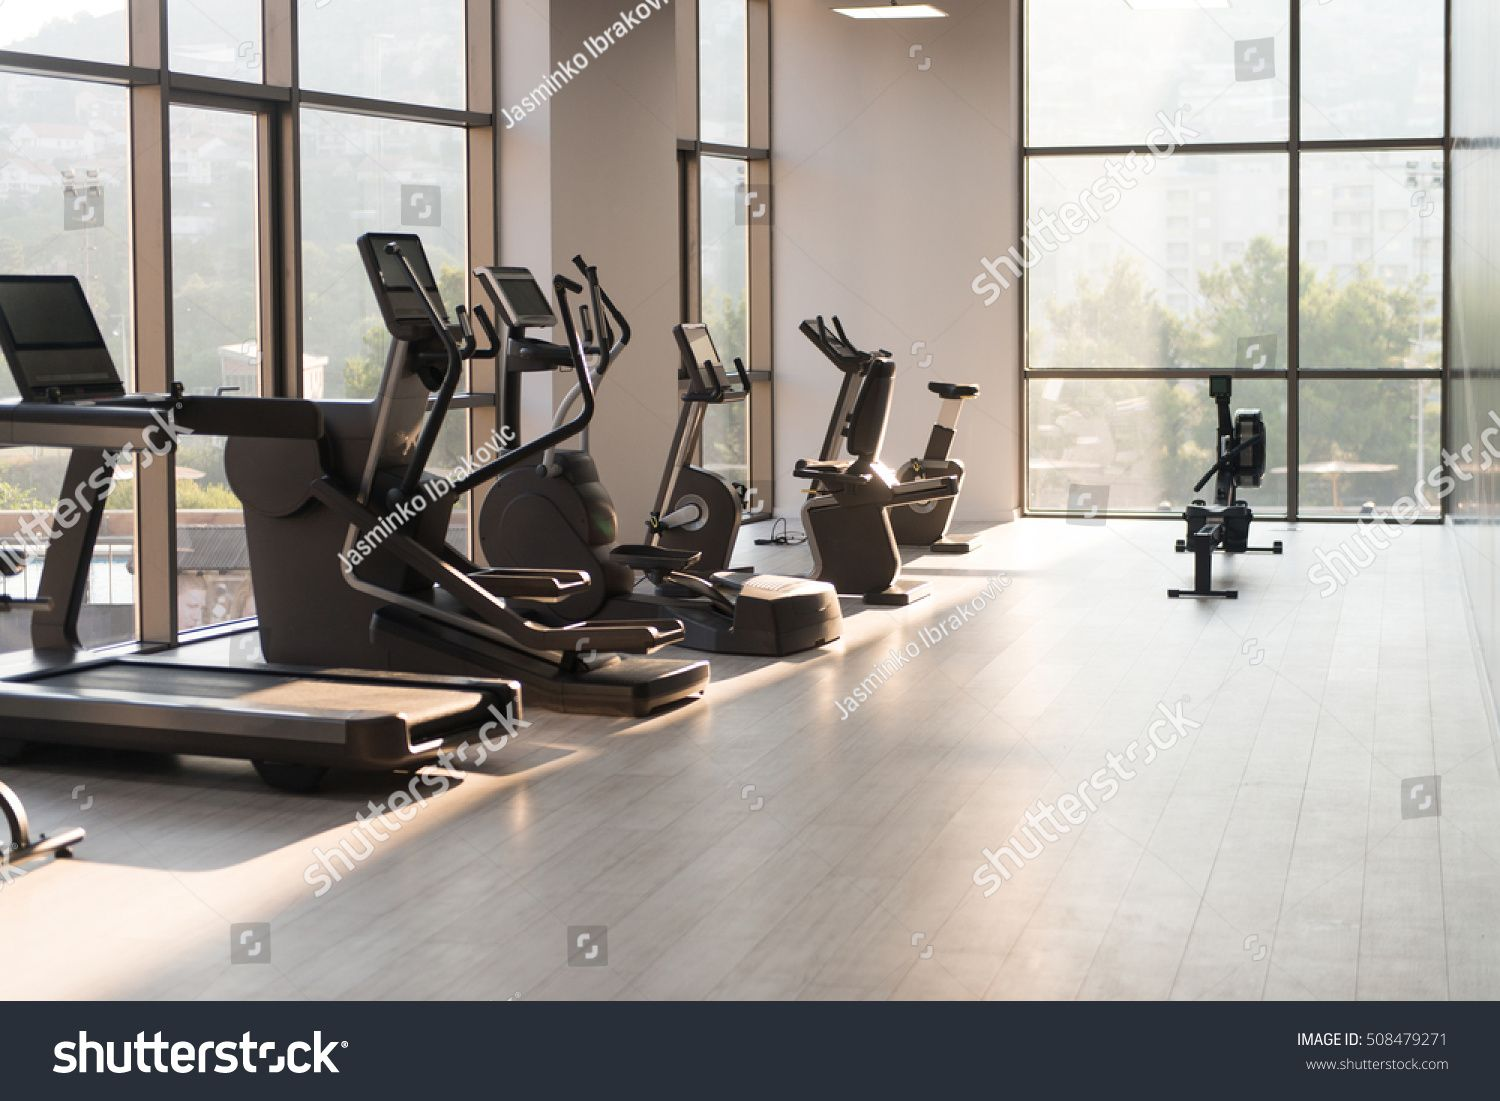 Modern Gym Room Fitness Center With Equipment And Machines Ad Sponsored Room Gym Modern Fitness Best Workout Machine Workout Machines Gym Room